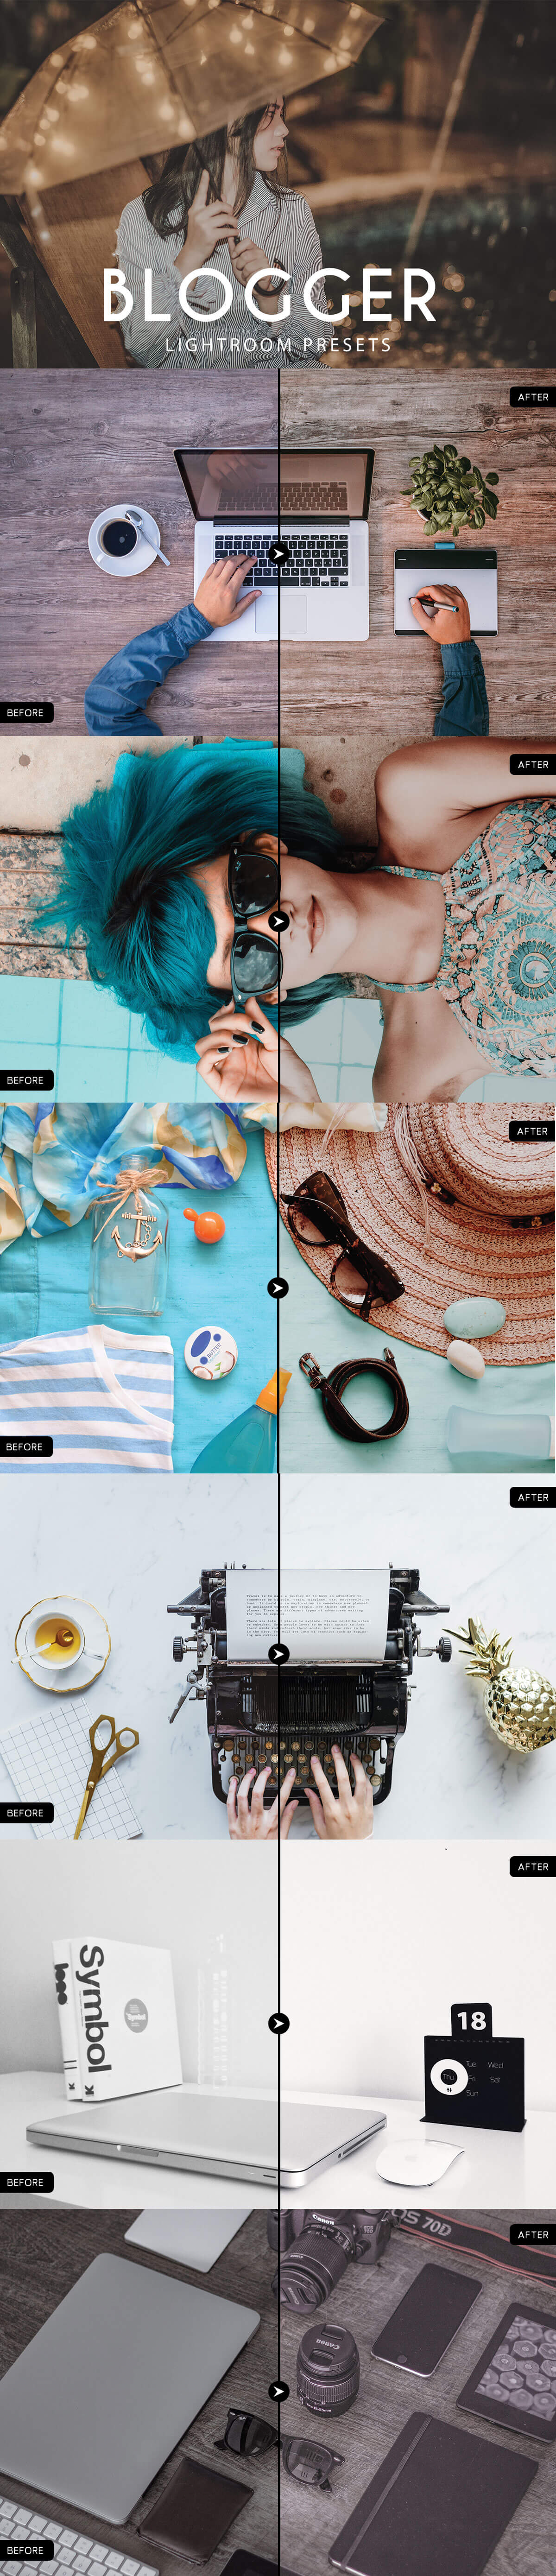 Free Blogger Lightroom Presets - Creativetacos